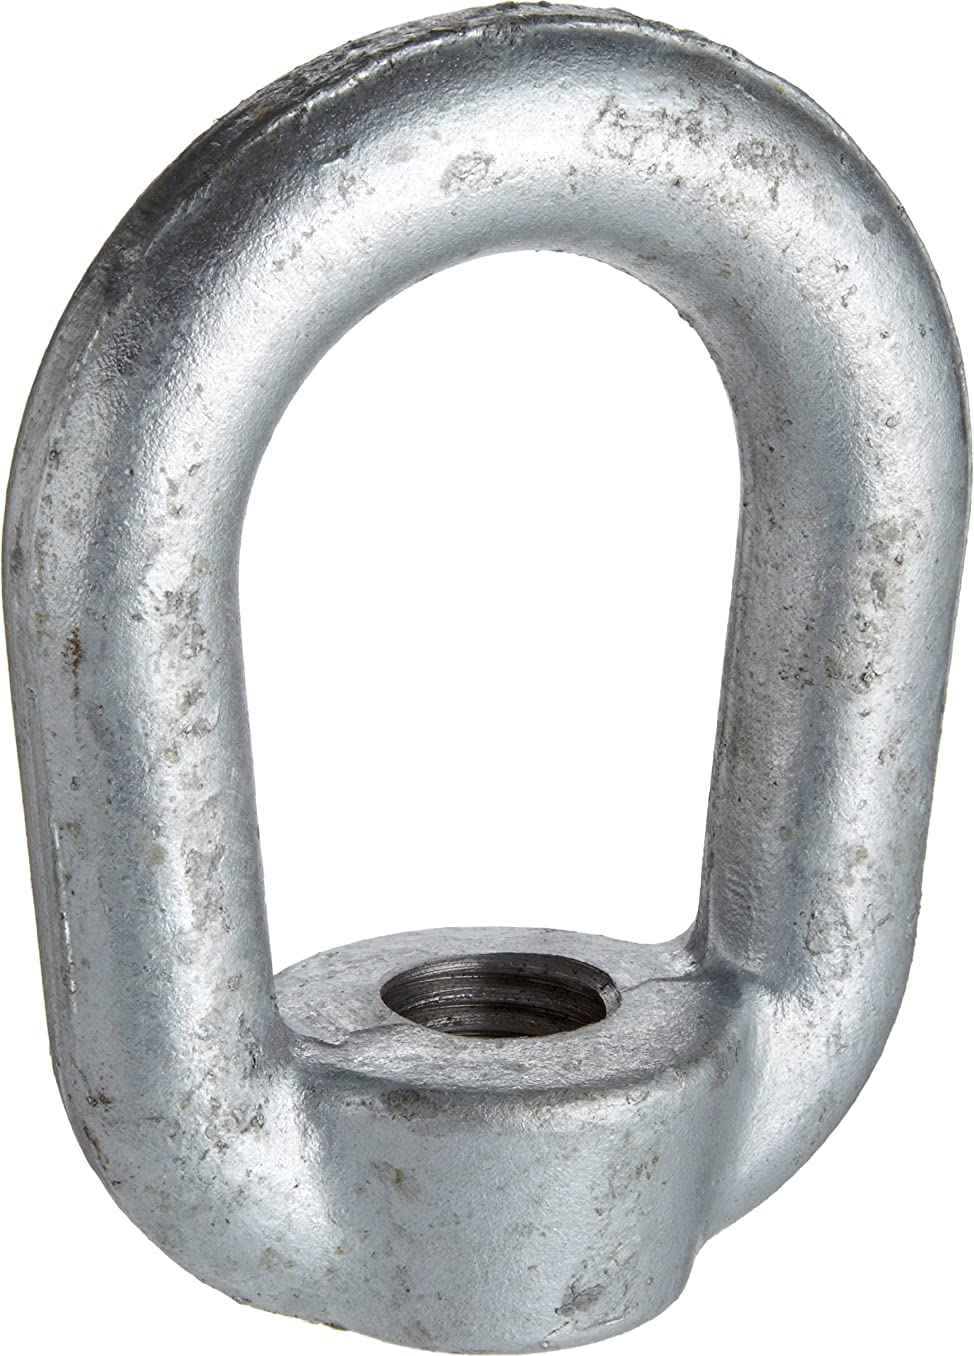 Campbell 776-G 6 Eye Nut, Drop-Forged Carbon Steel Galvanized, 7/8